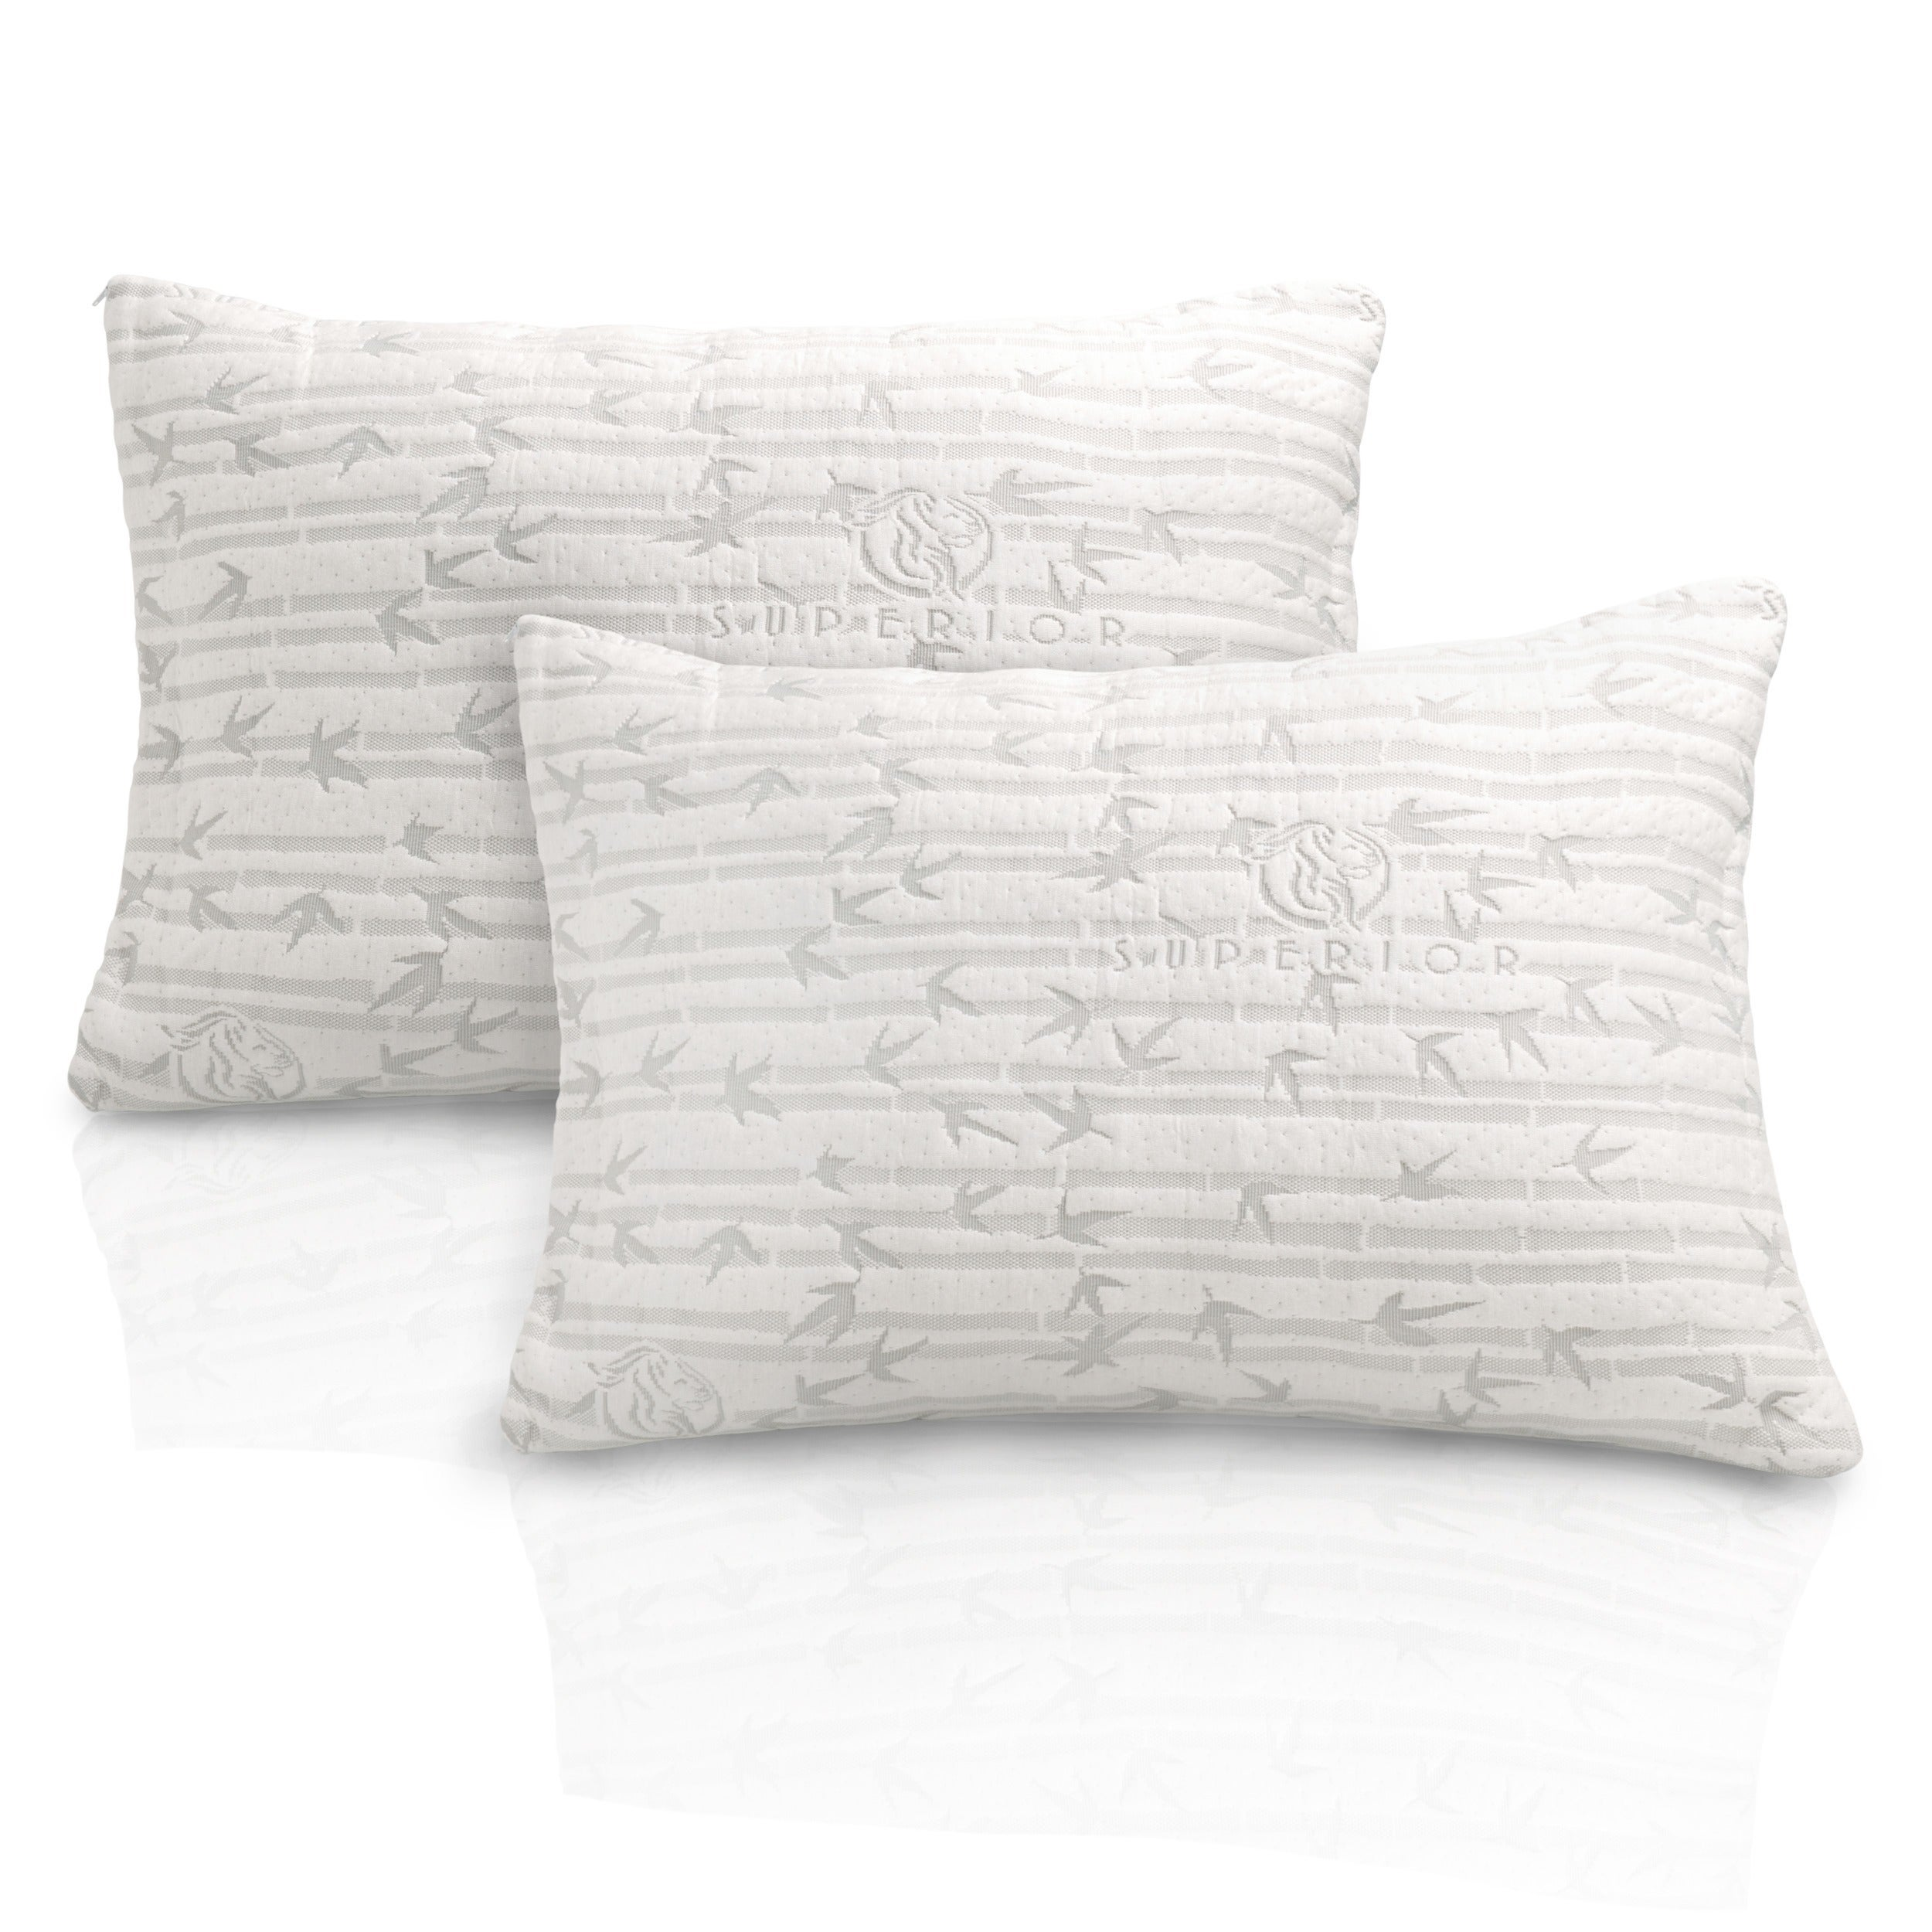 from bedding pillow on bath pillows infused free product jack panama over orders set of reviews bed rayon overstock shipping bamboo